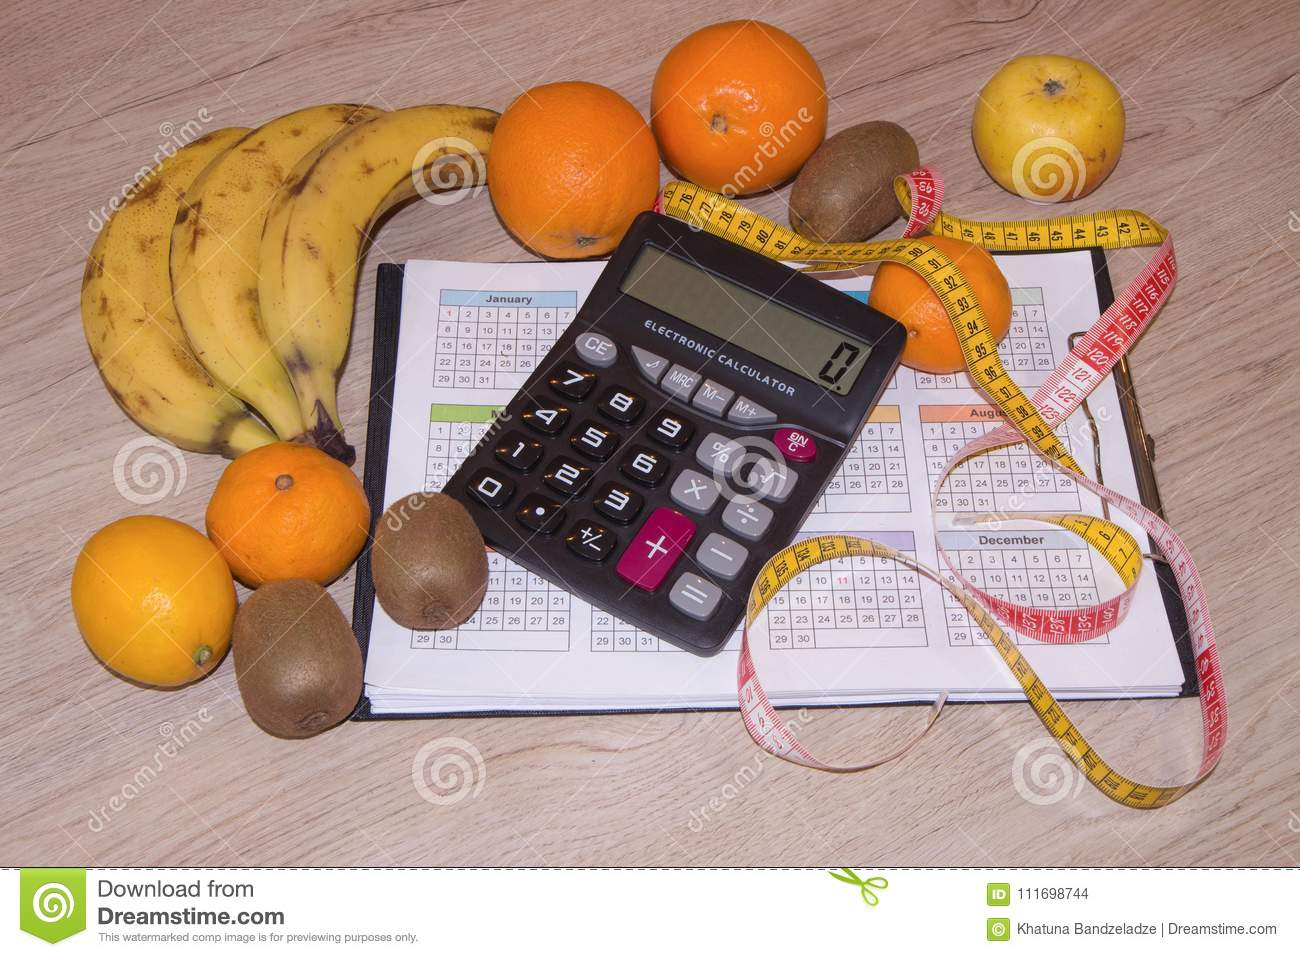 products with low fat content fruits and measuring tape stock photo